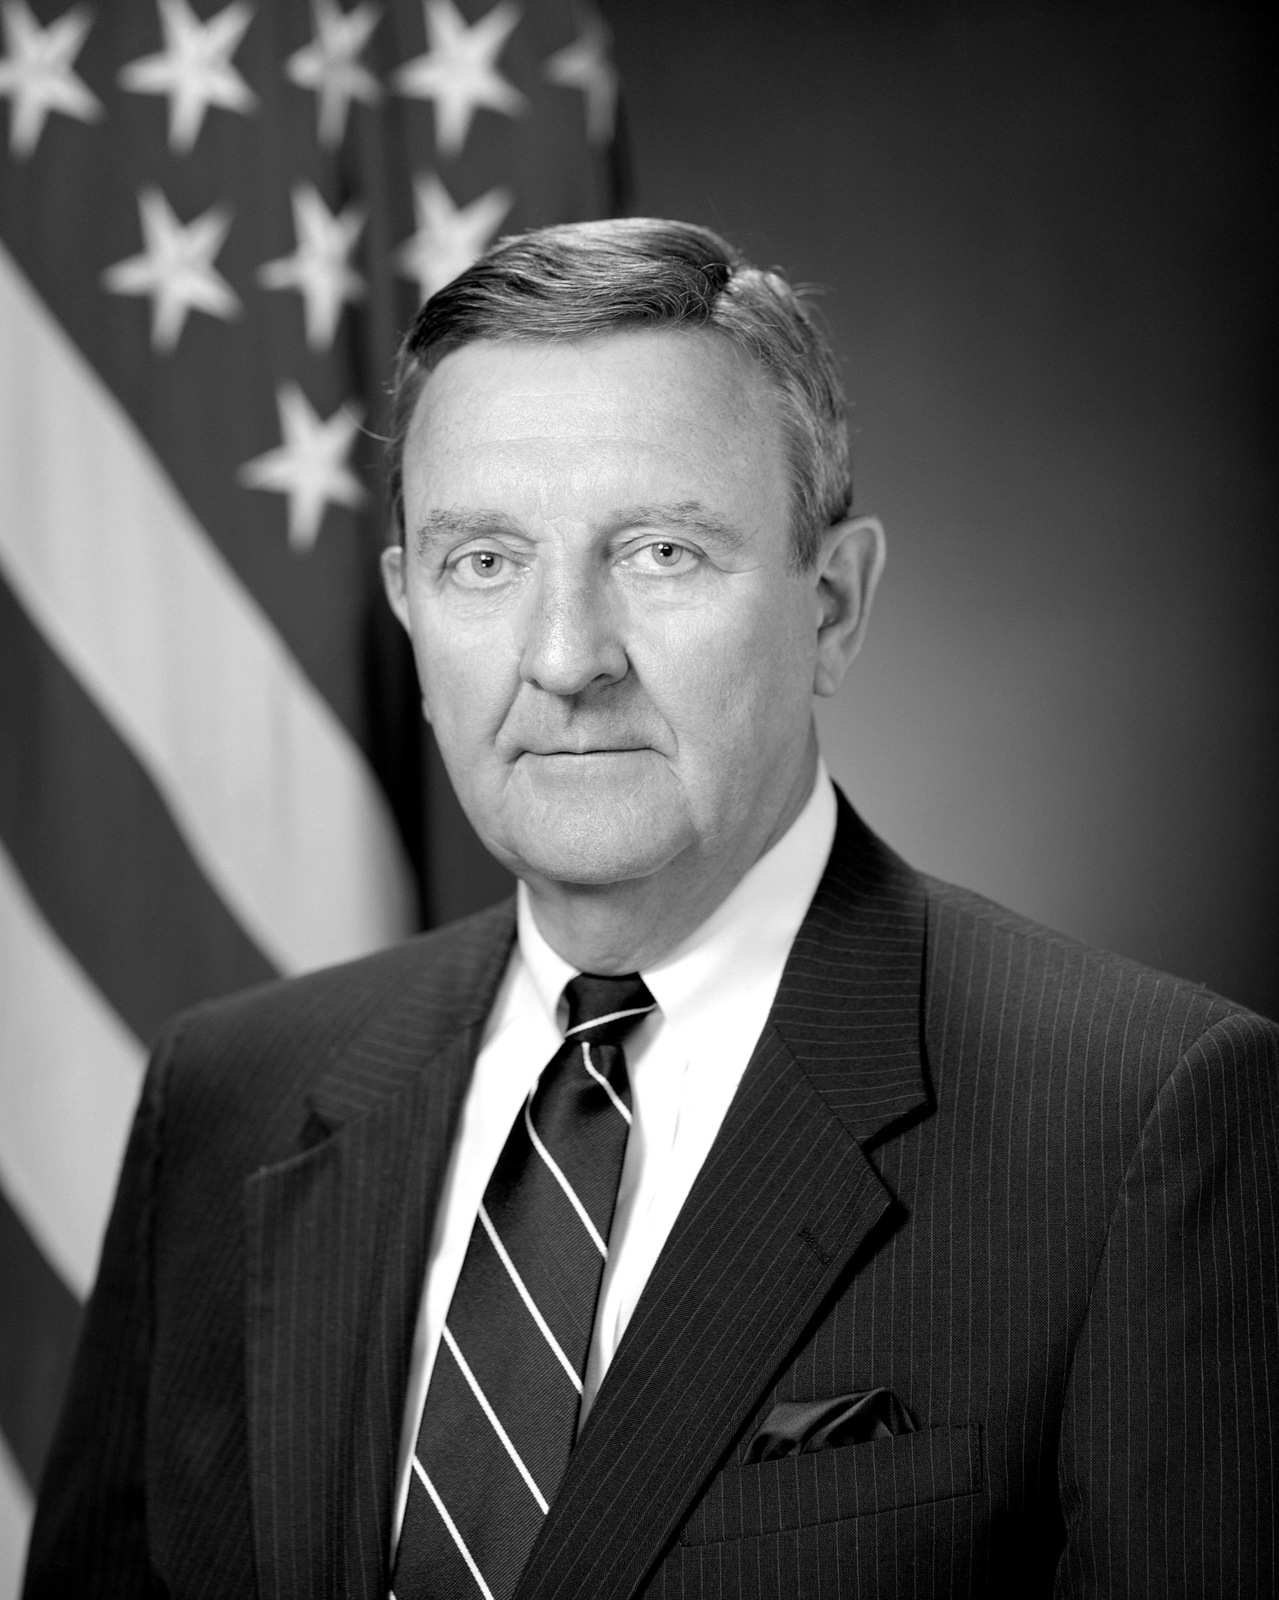 Portrait of DoD Mr. Charles W. Roades Vice Deputy for Attache/Operations, Defence Intelligence Agency (Uncovered) (U.S. Army photo by Mr. Russell F. Roederer)